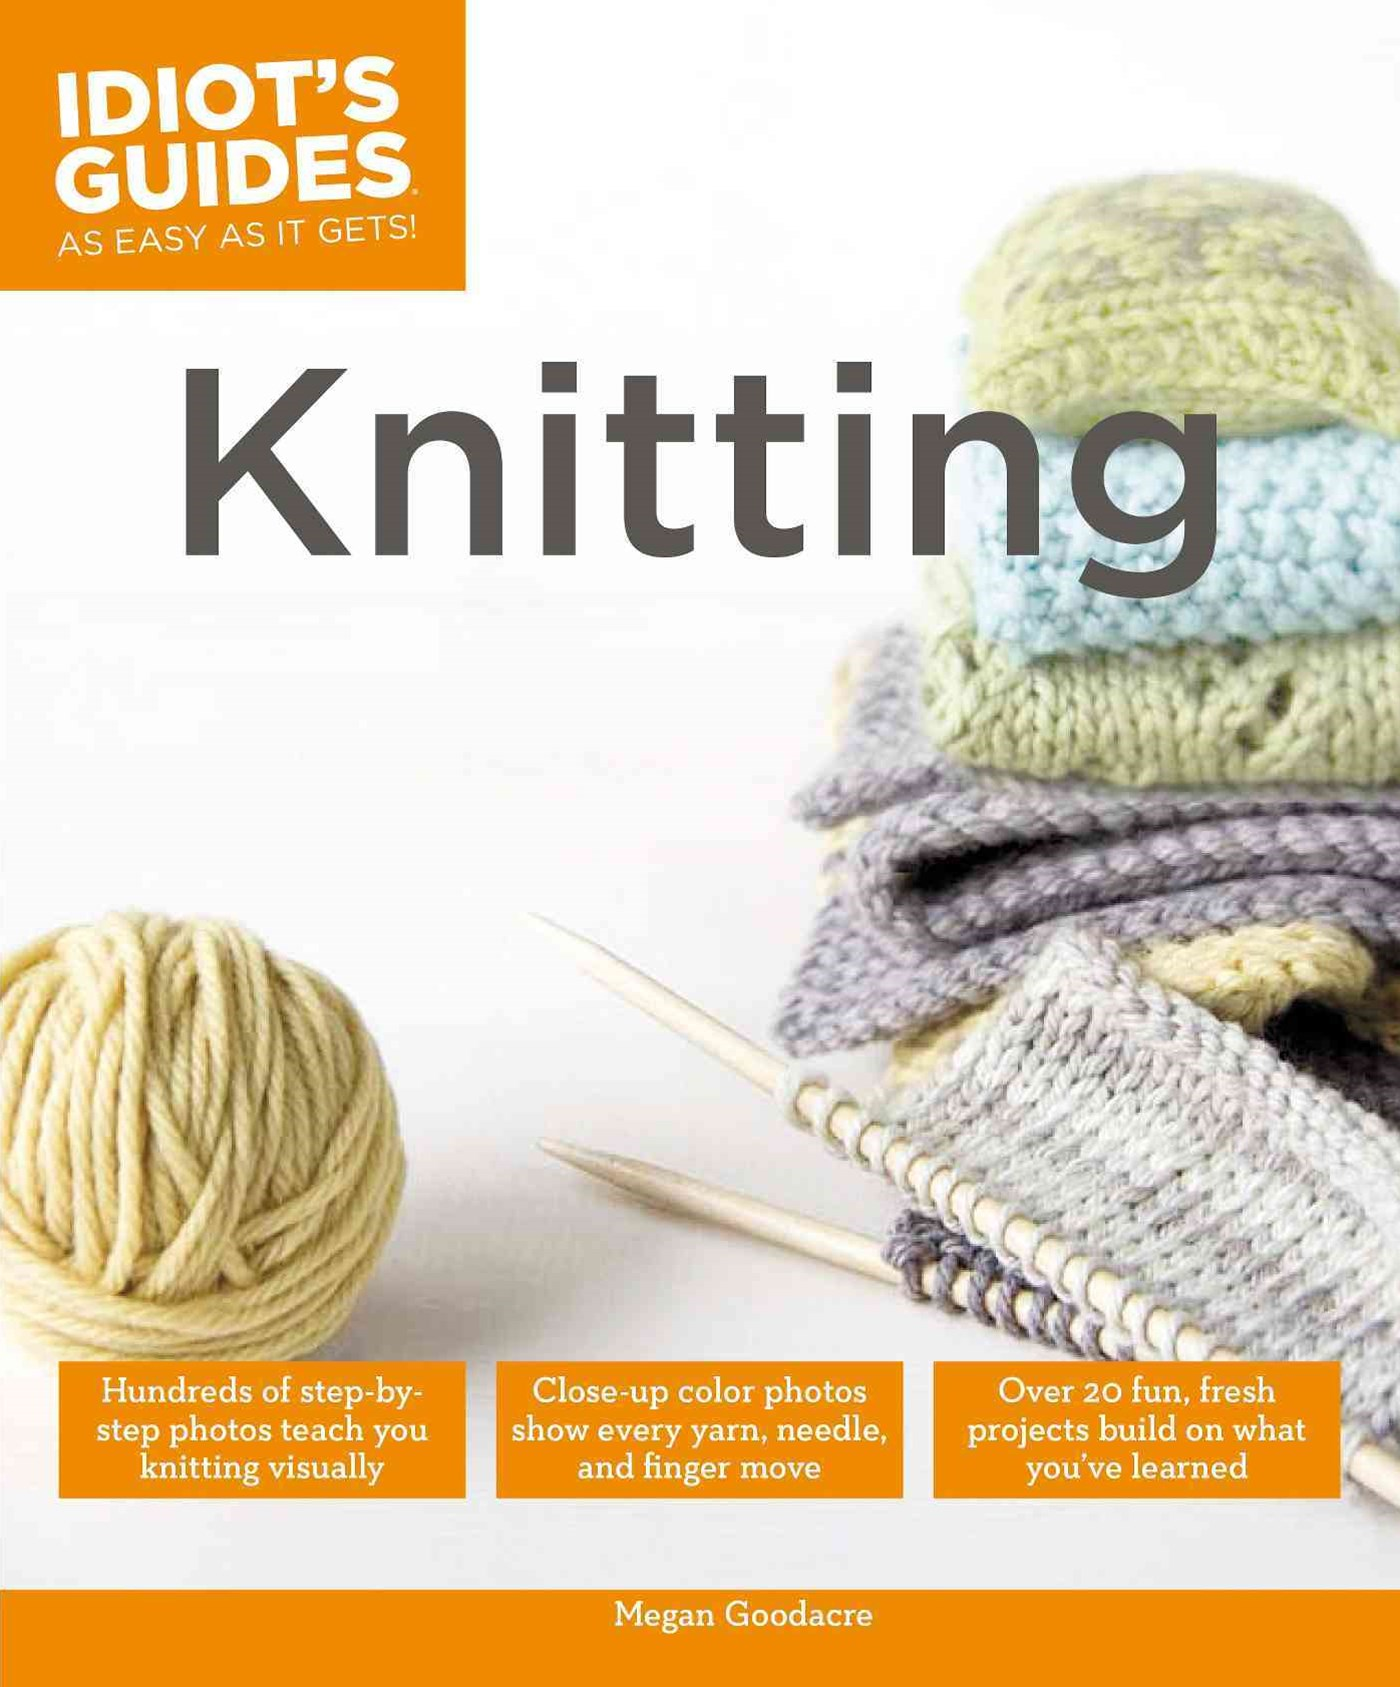 Idiot's Guide - Knitting